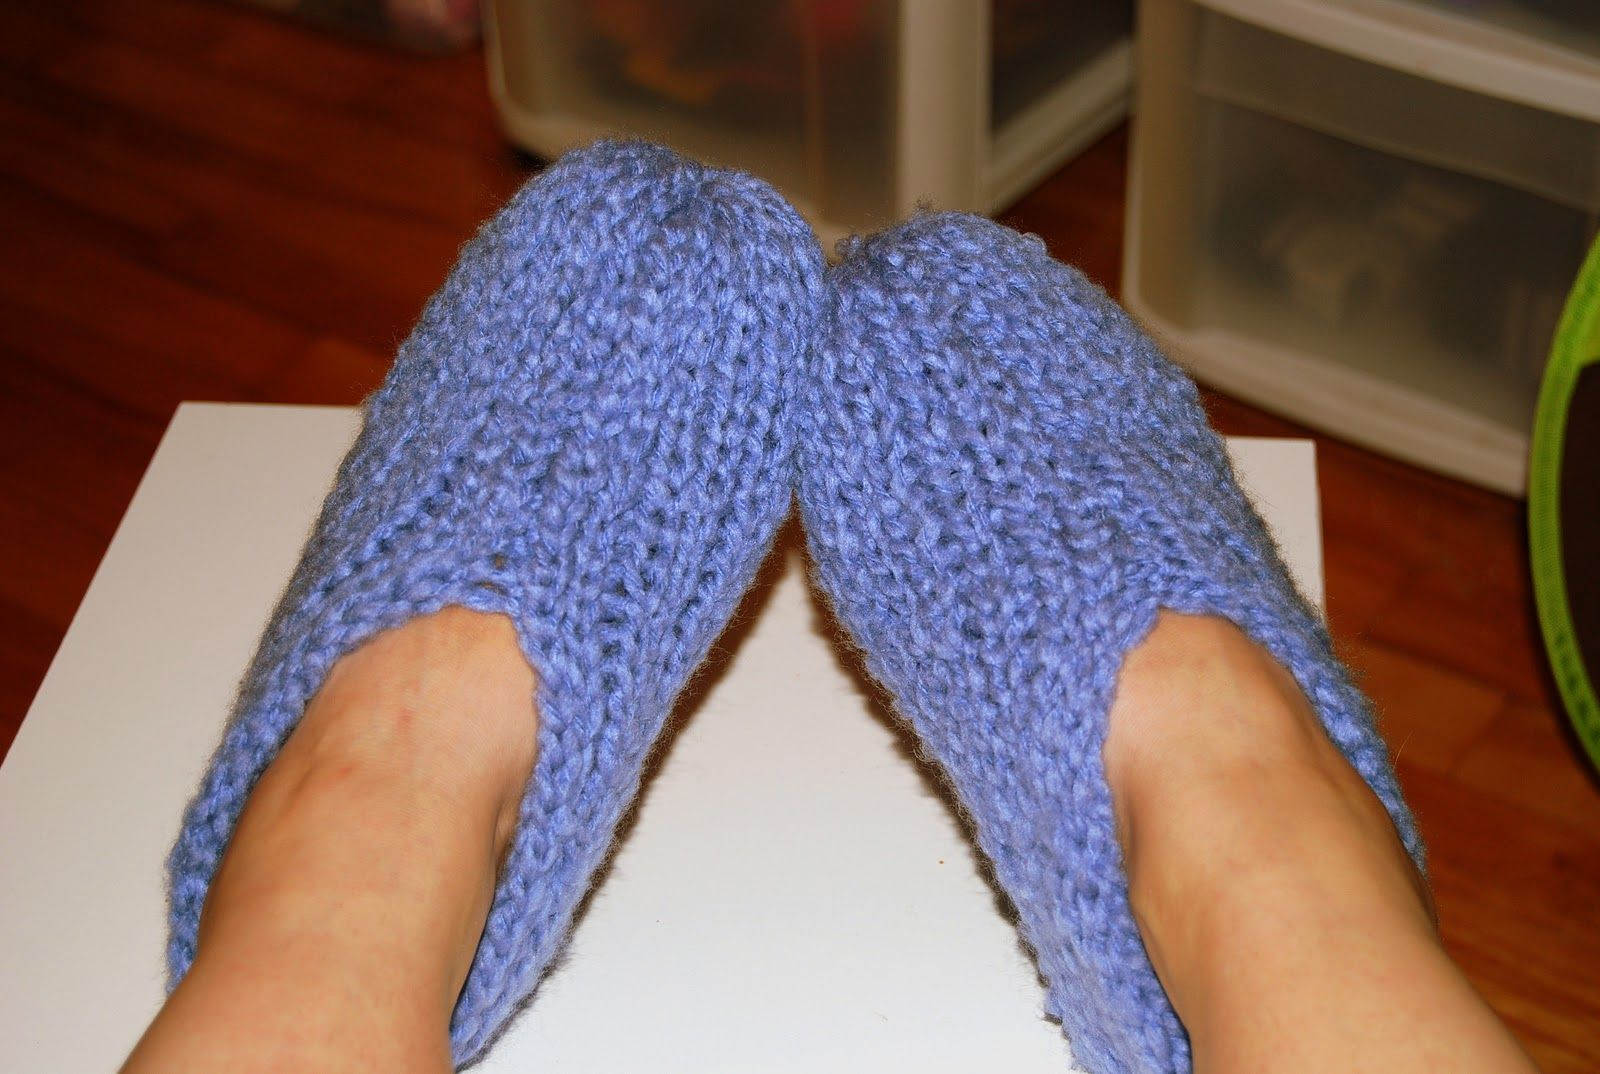 >Loom knitting slippers - Tricotiner des pantoufles ...